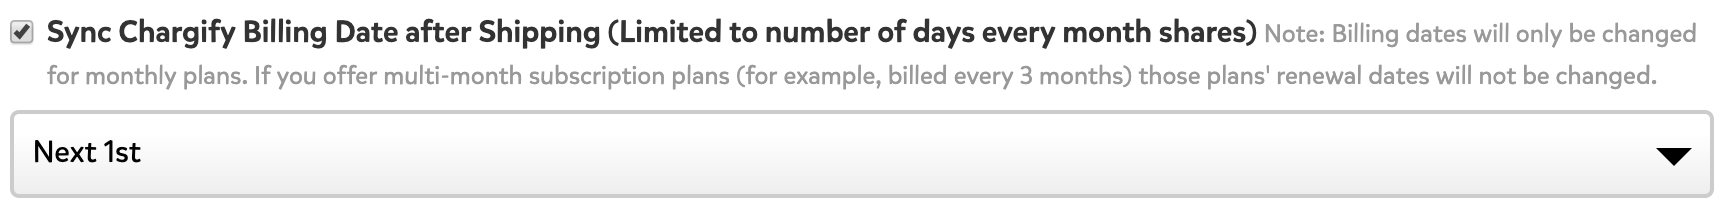 A screenshot showing the option to 'Sync Chargify Billing Date after Shipping.' Below, there's a drop down menu with additional options for this feature.